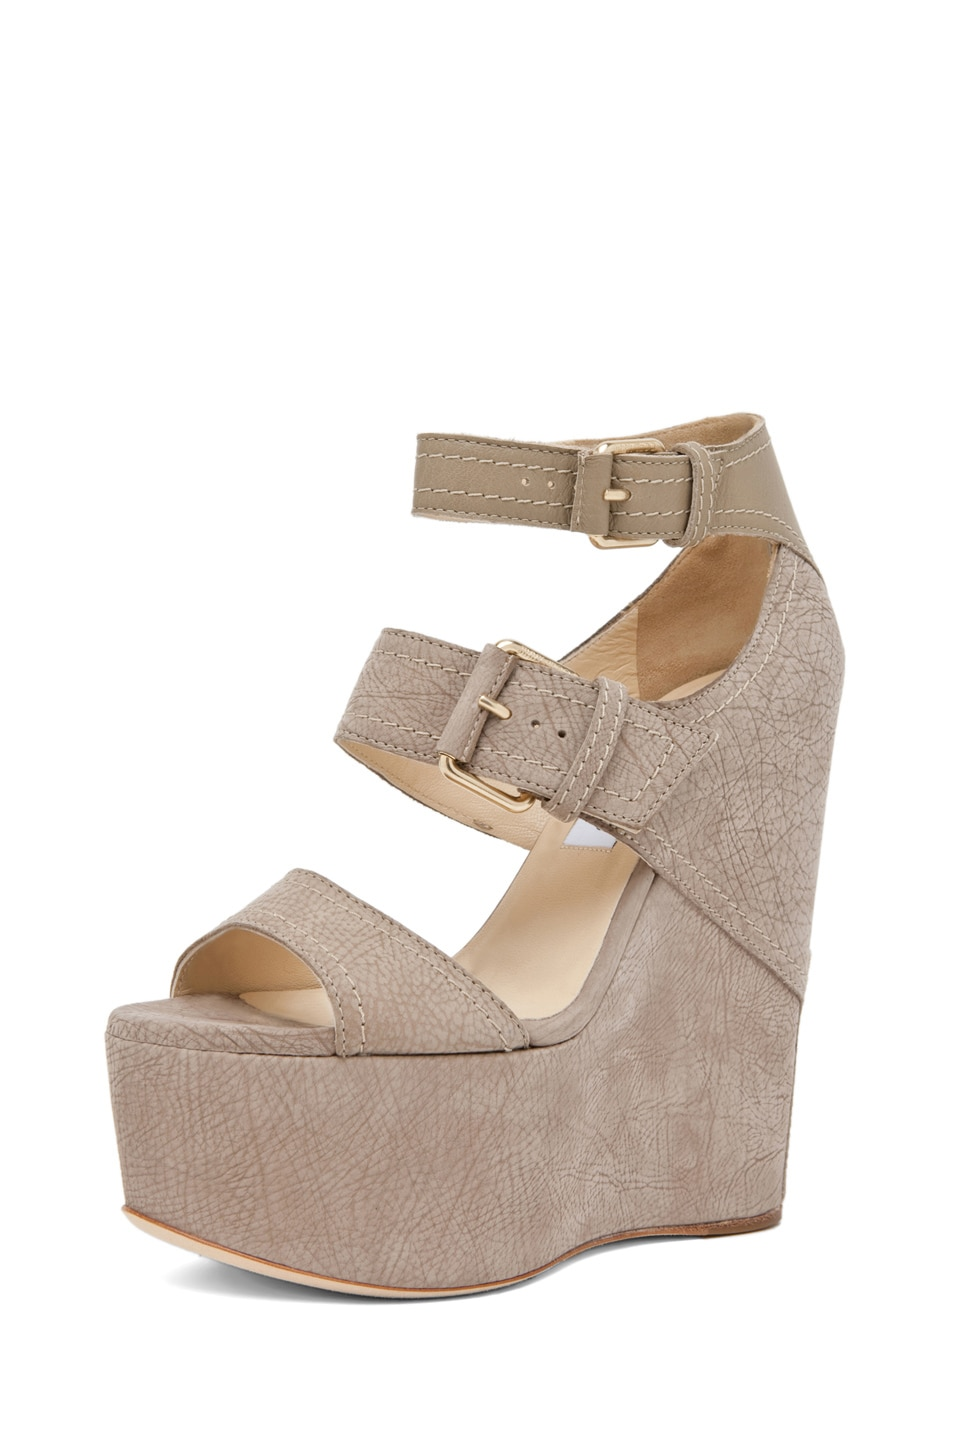 Image 2 of Jimmy Choo Leora Wedge Sandal in Light Khaki